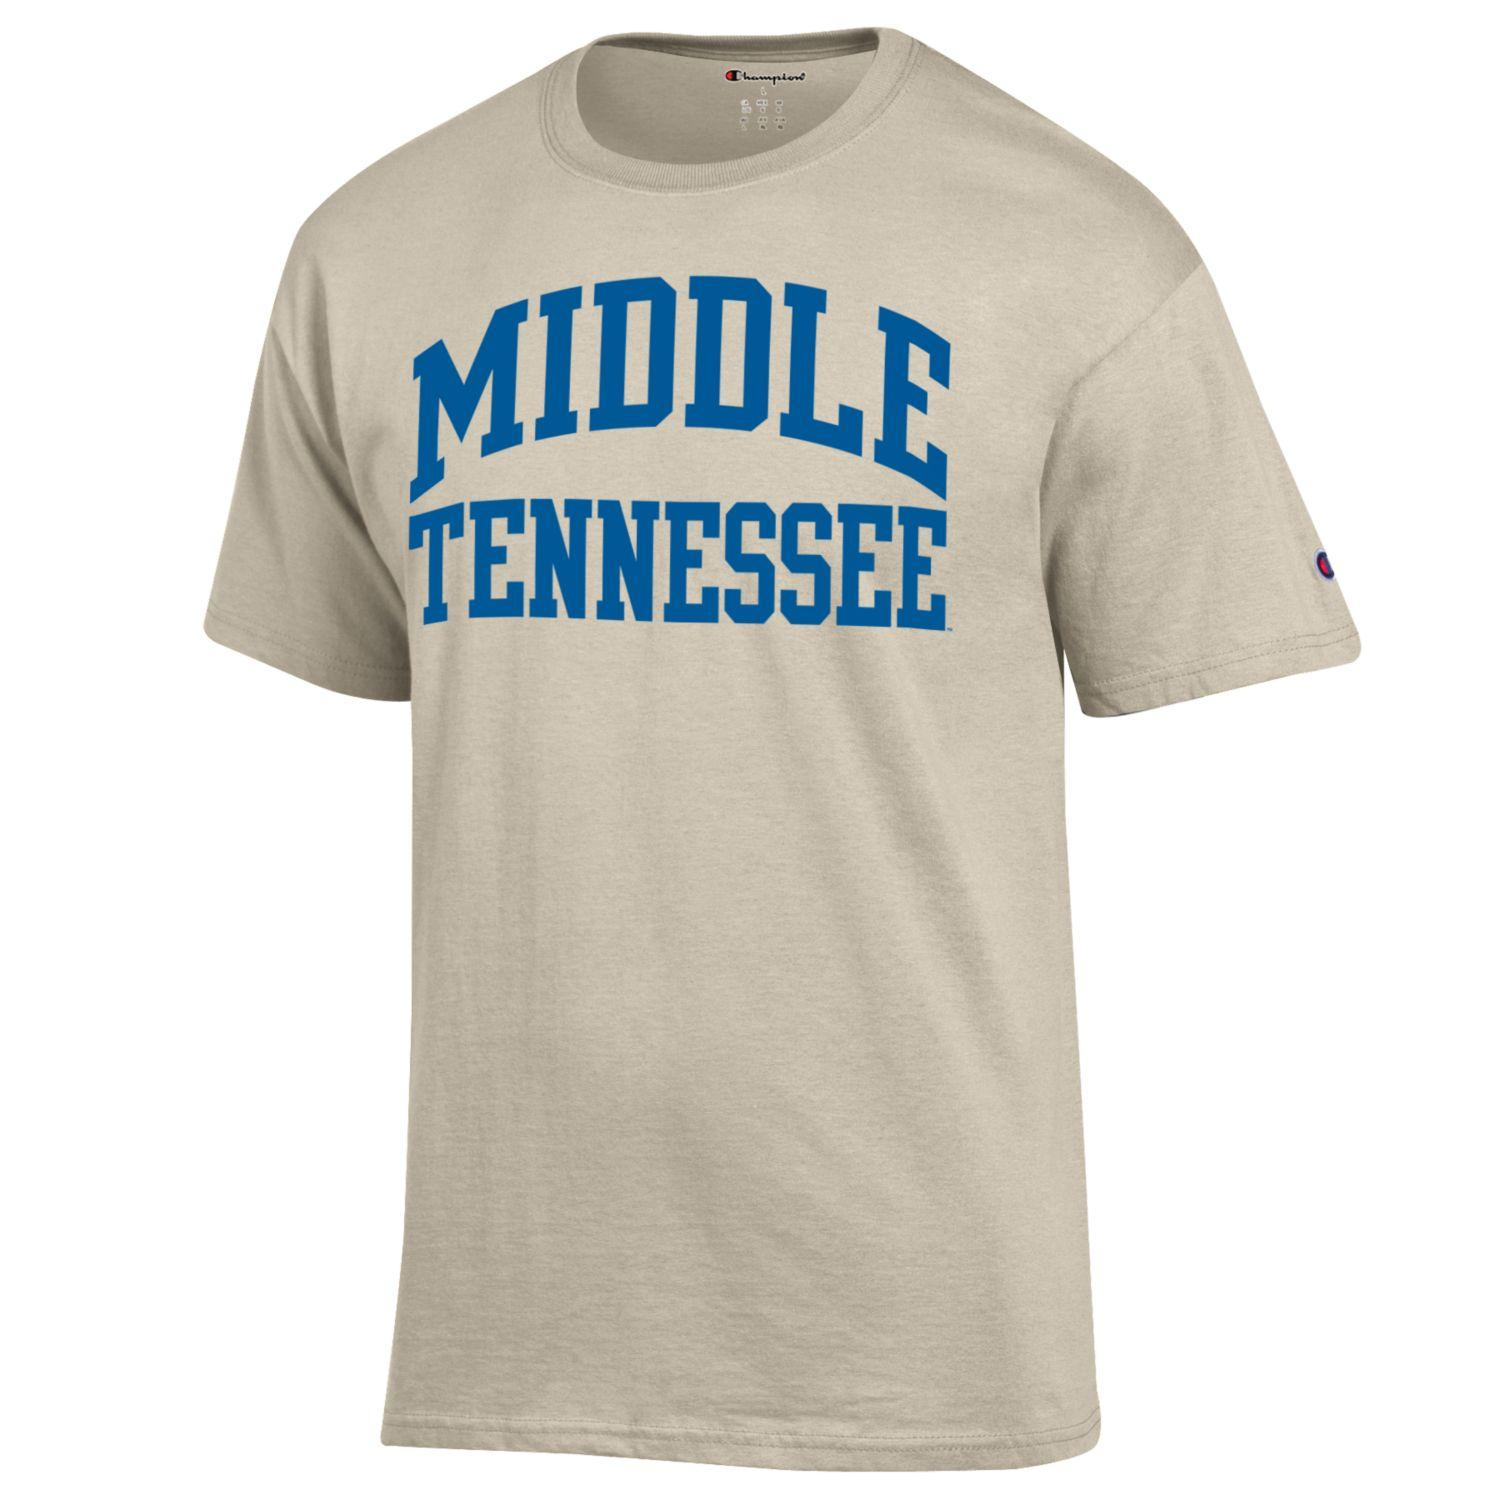 Middle Tennessee Arch Tshirt